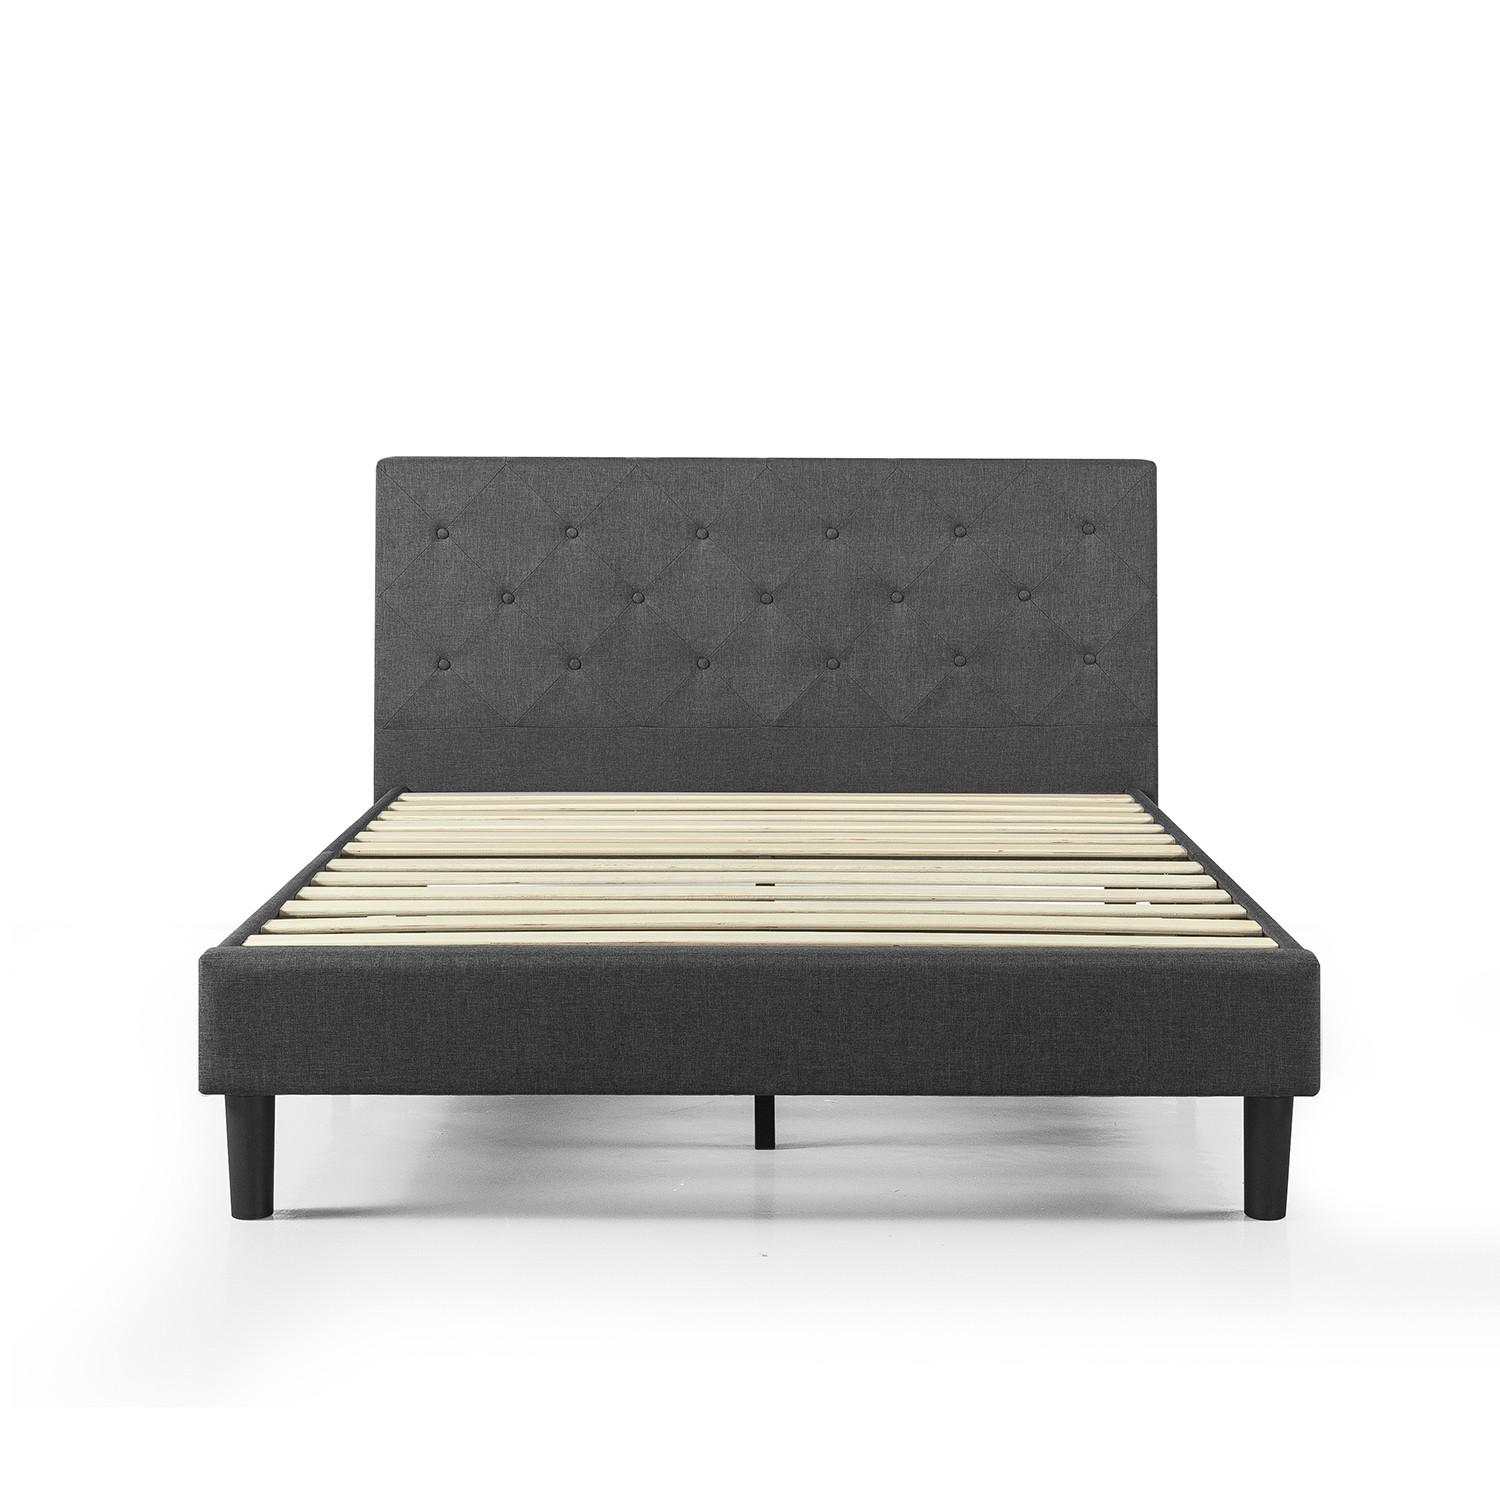 Zinus Shalini Upholstered Diamond Stitched Platform Bed - image-0